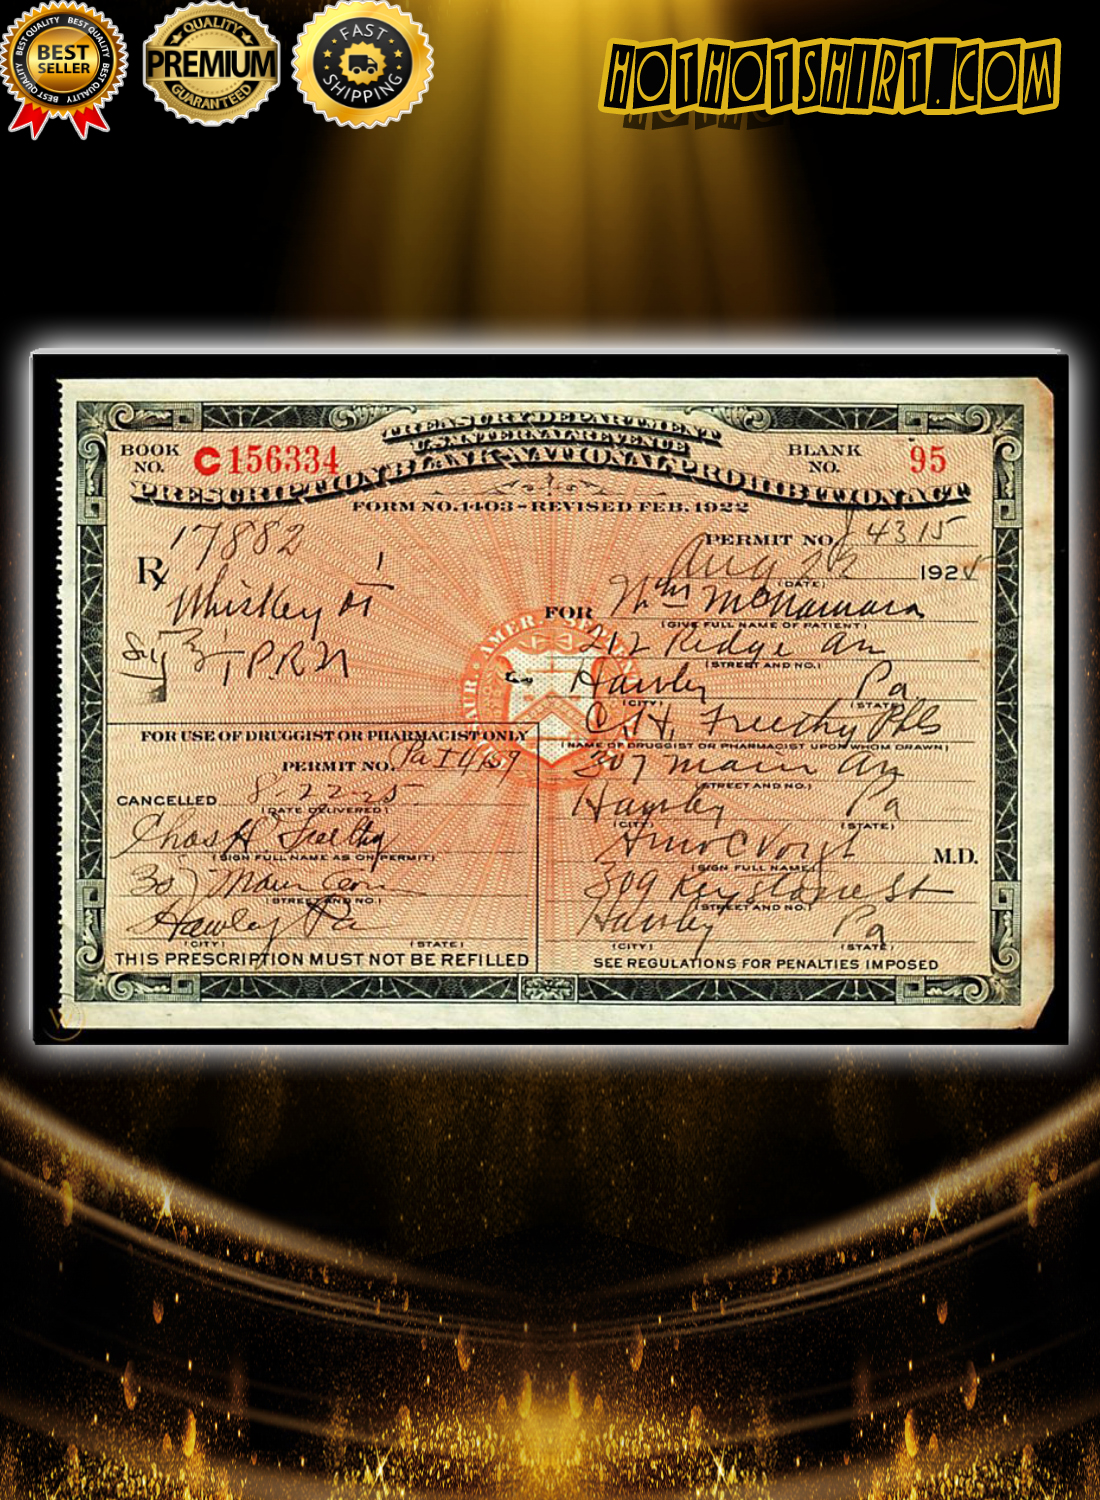 1924 Prescription for Whiskey During Prohibition Poster